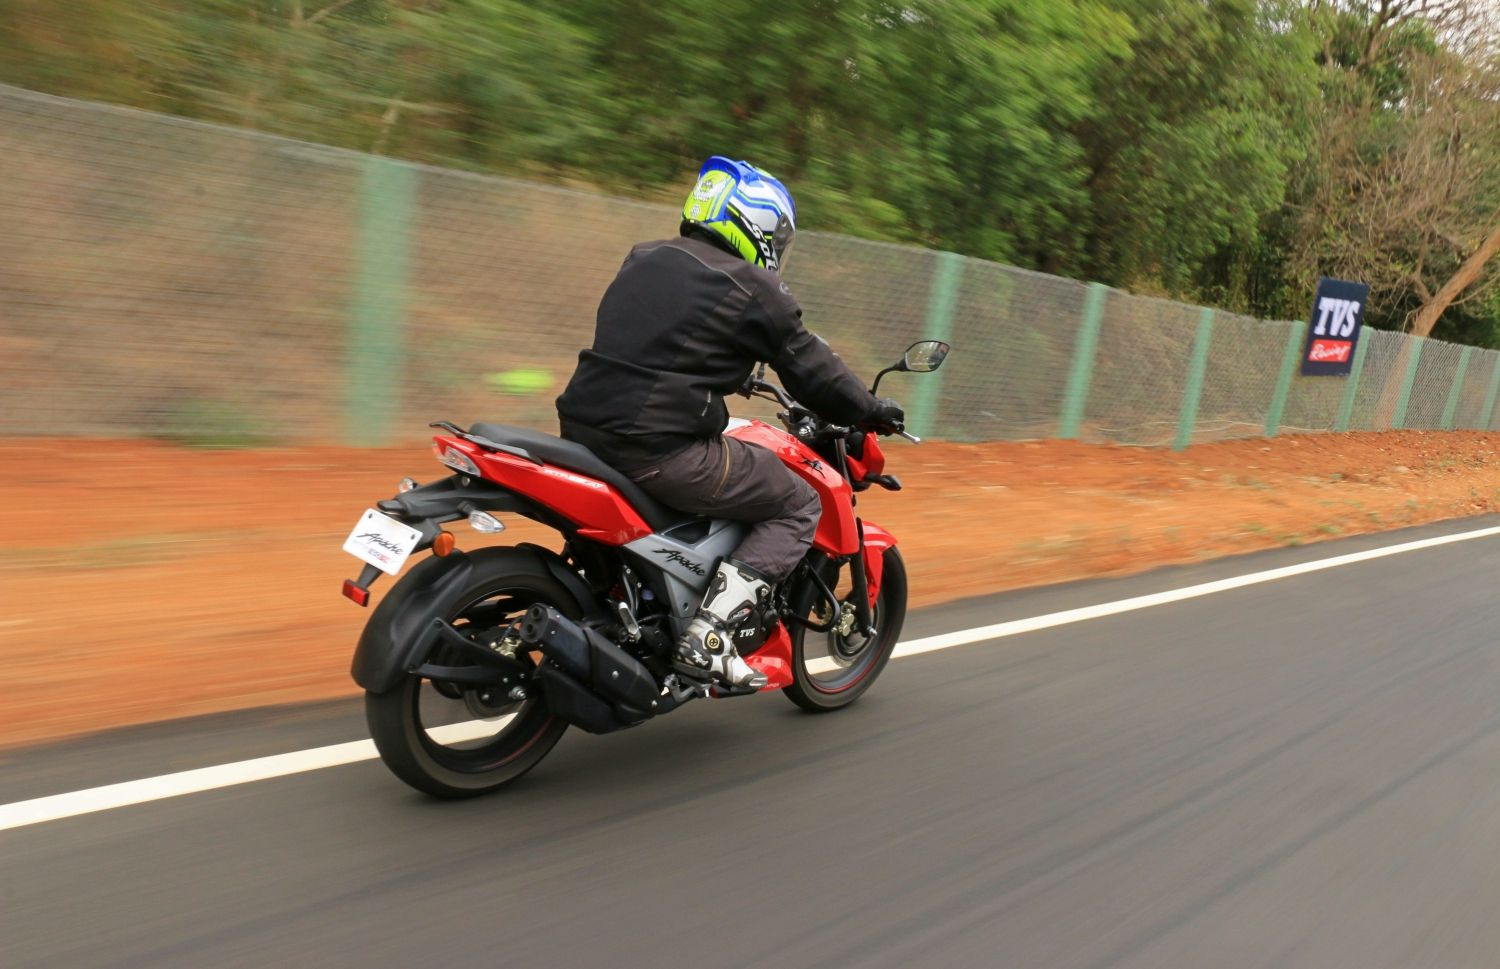 2018 TVS Apache RTR 160 first ride review